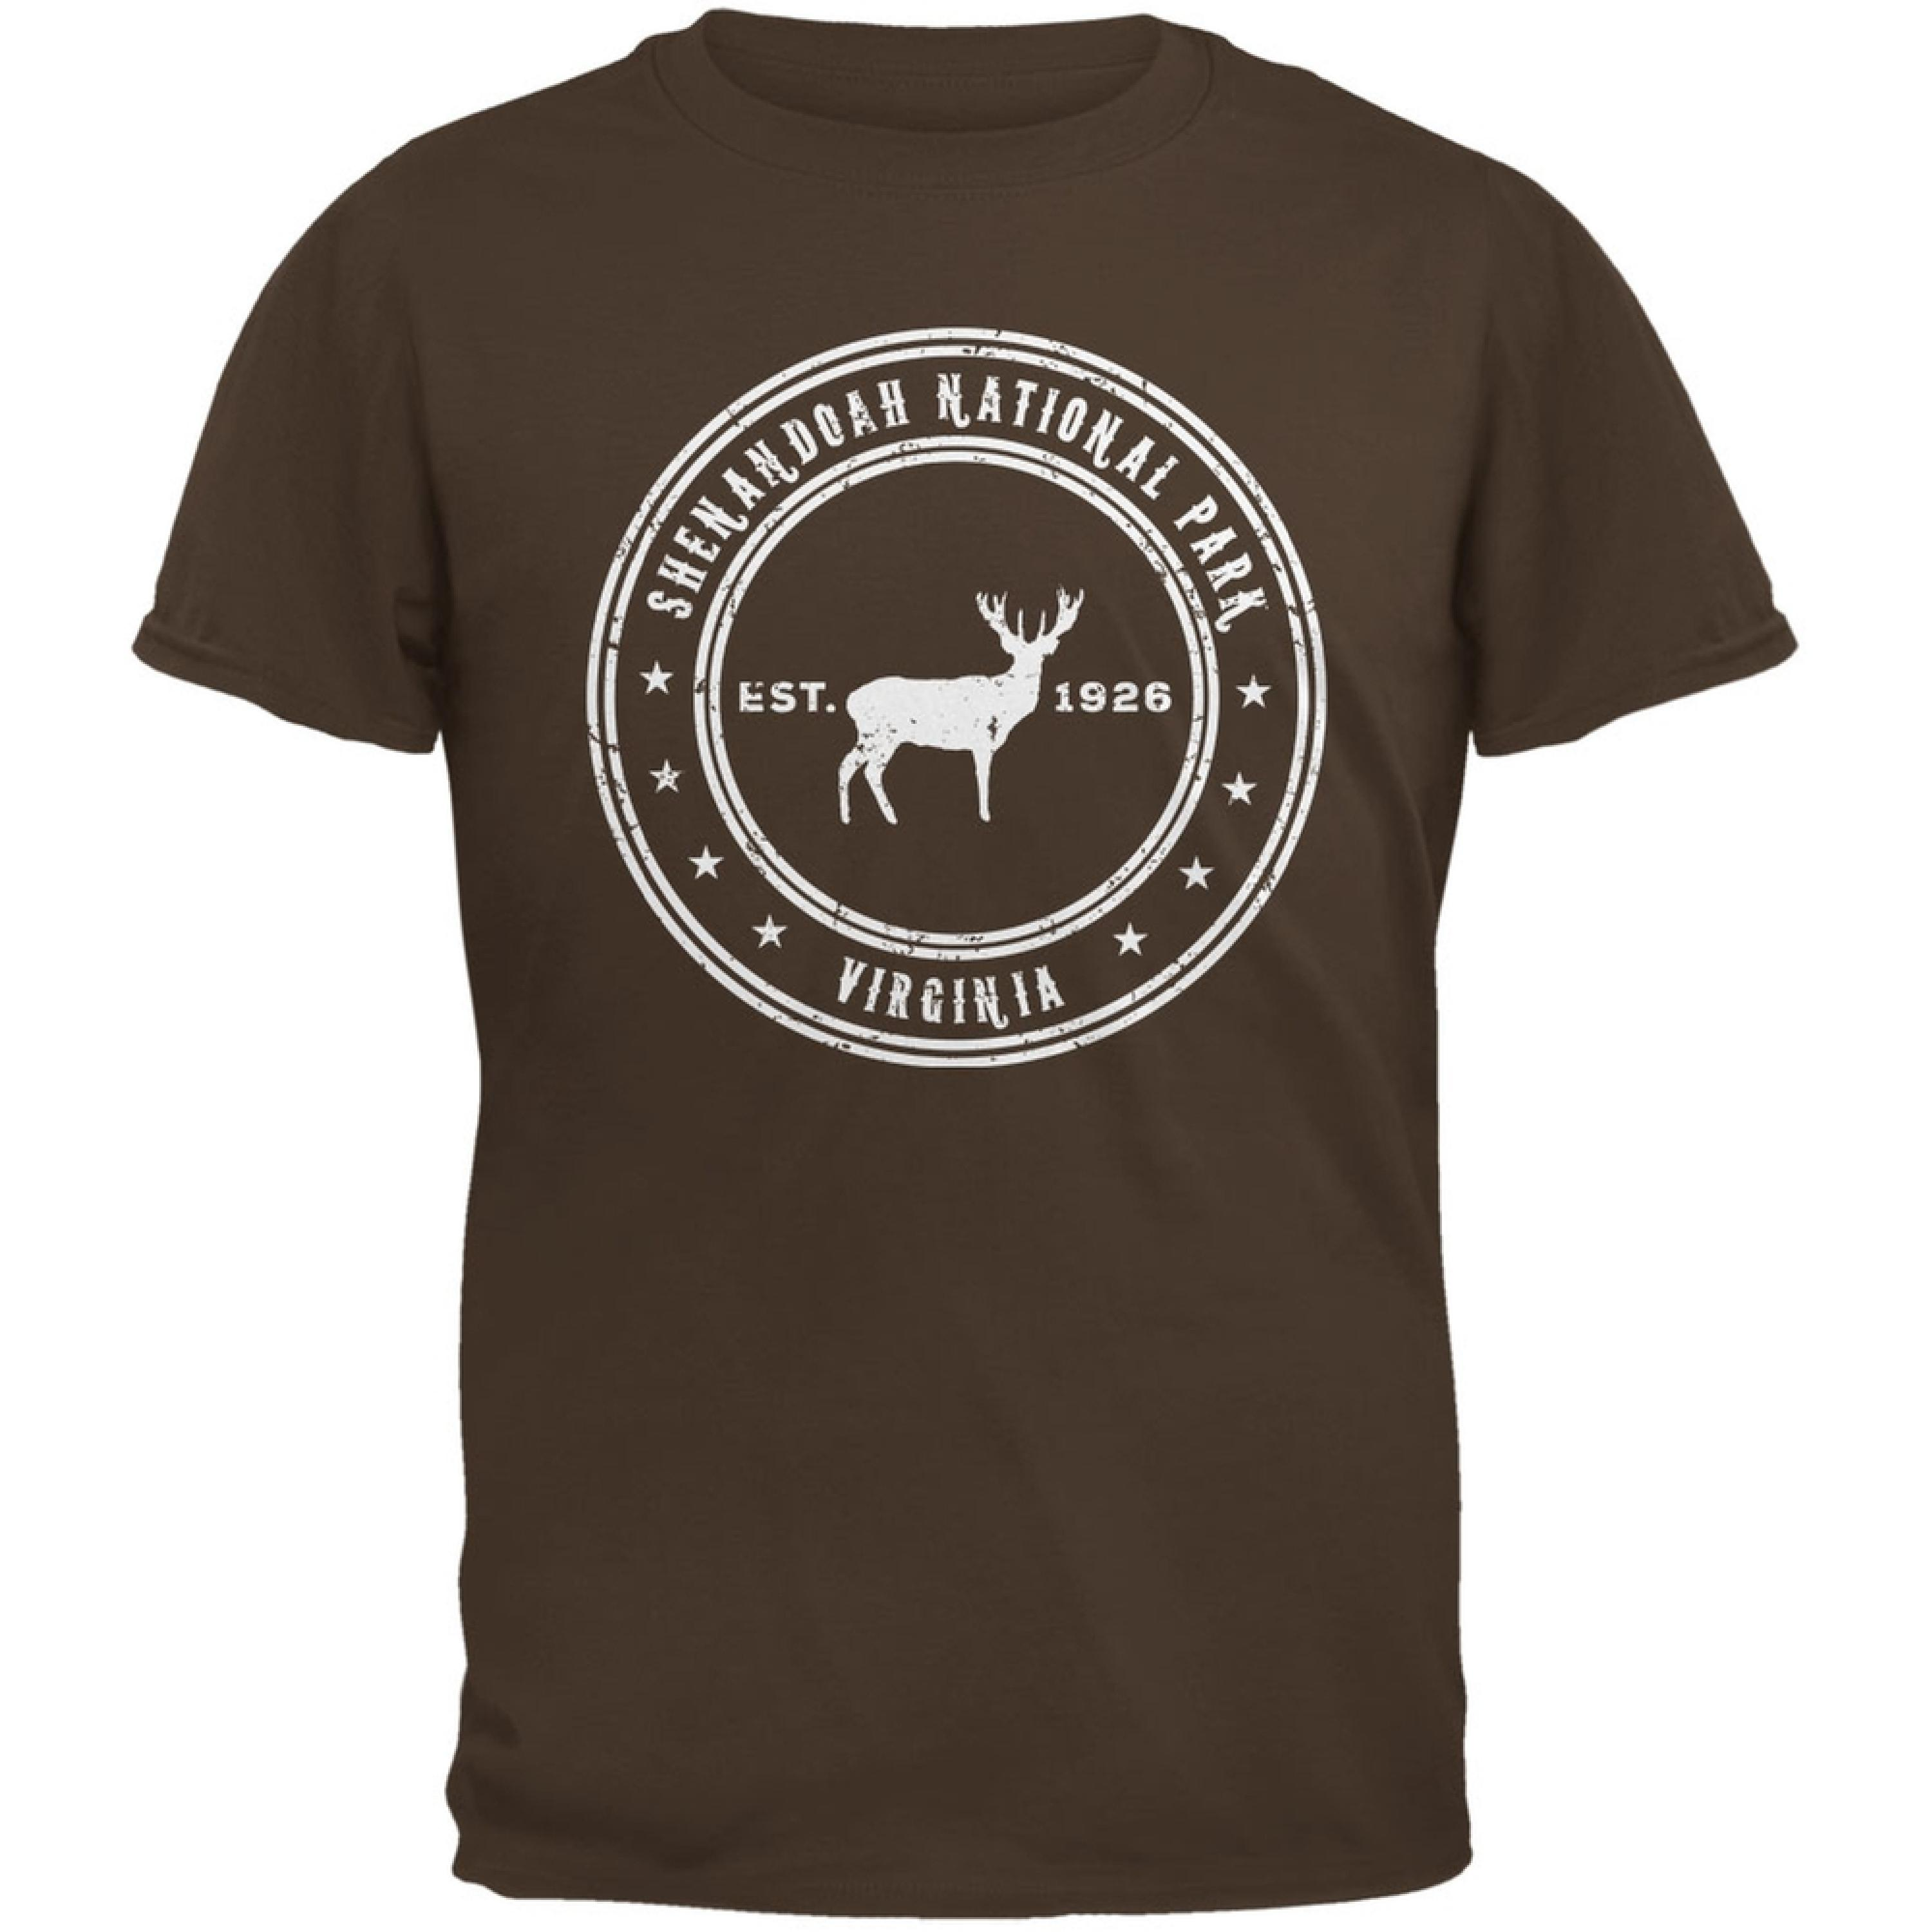 Shenandoah National Park Brown Adult T-Shirt